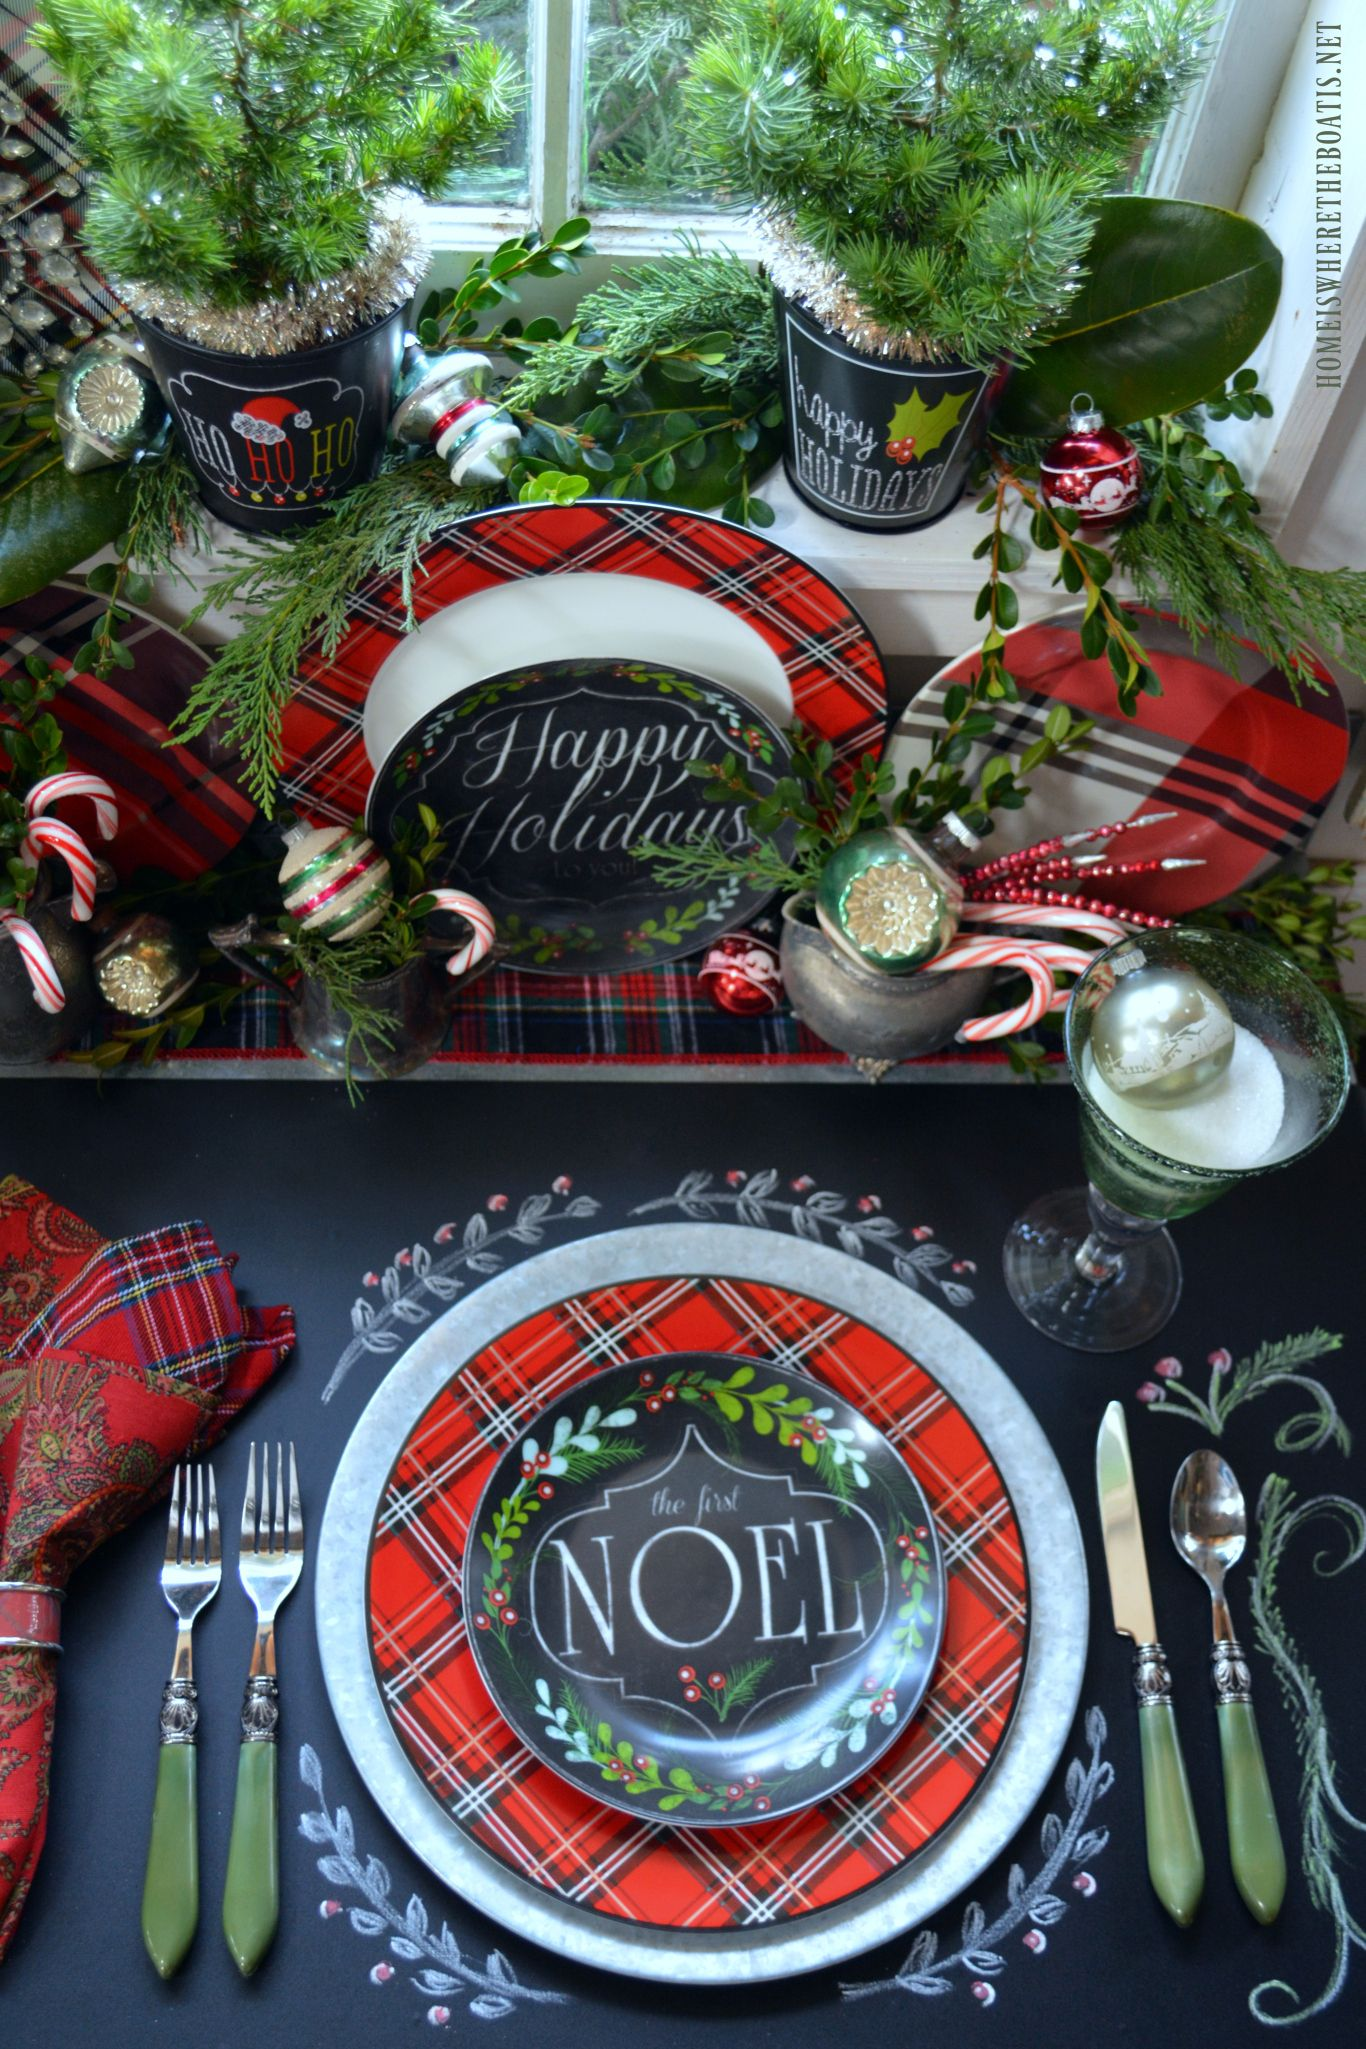 chalkboard runner and plaid tidings in the potting shed. Black Bedroom Furniture Sets. Home Design Ideas